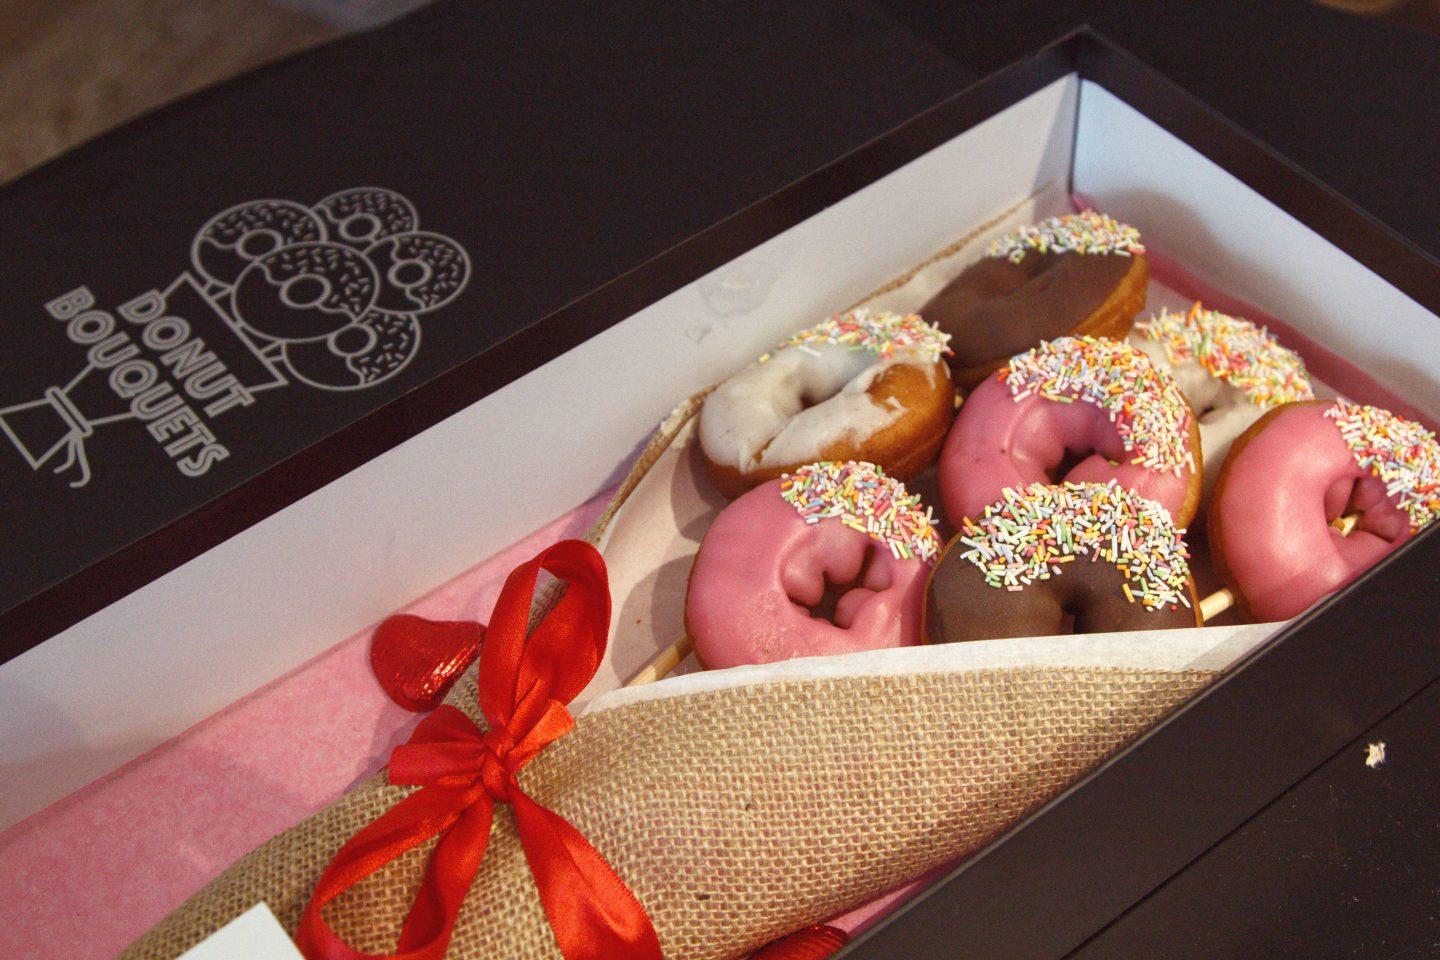 Donut delivery london unique gifts flower alternatives last minute donut delivery london unique gifts flower alternatives last minute gifts gifts for girls who dont like flowers bouquets for birthdays birthday gift ideas izmirmasajfo